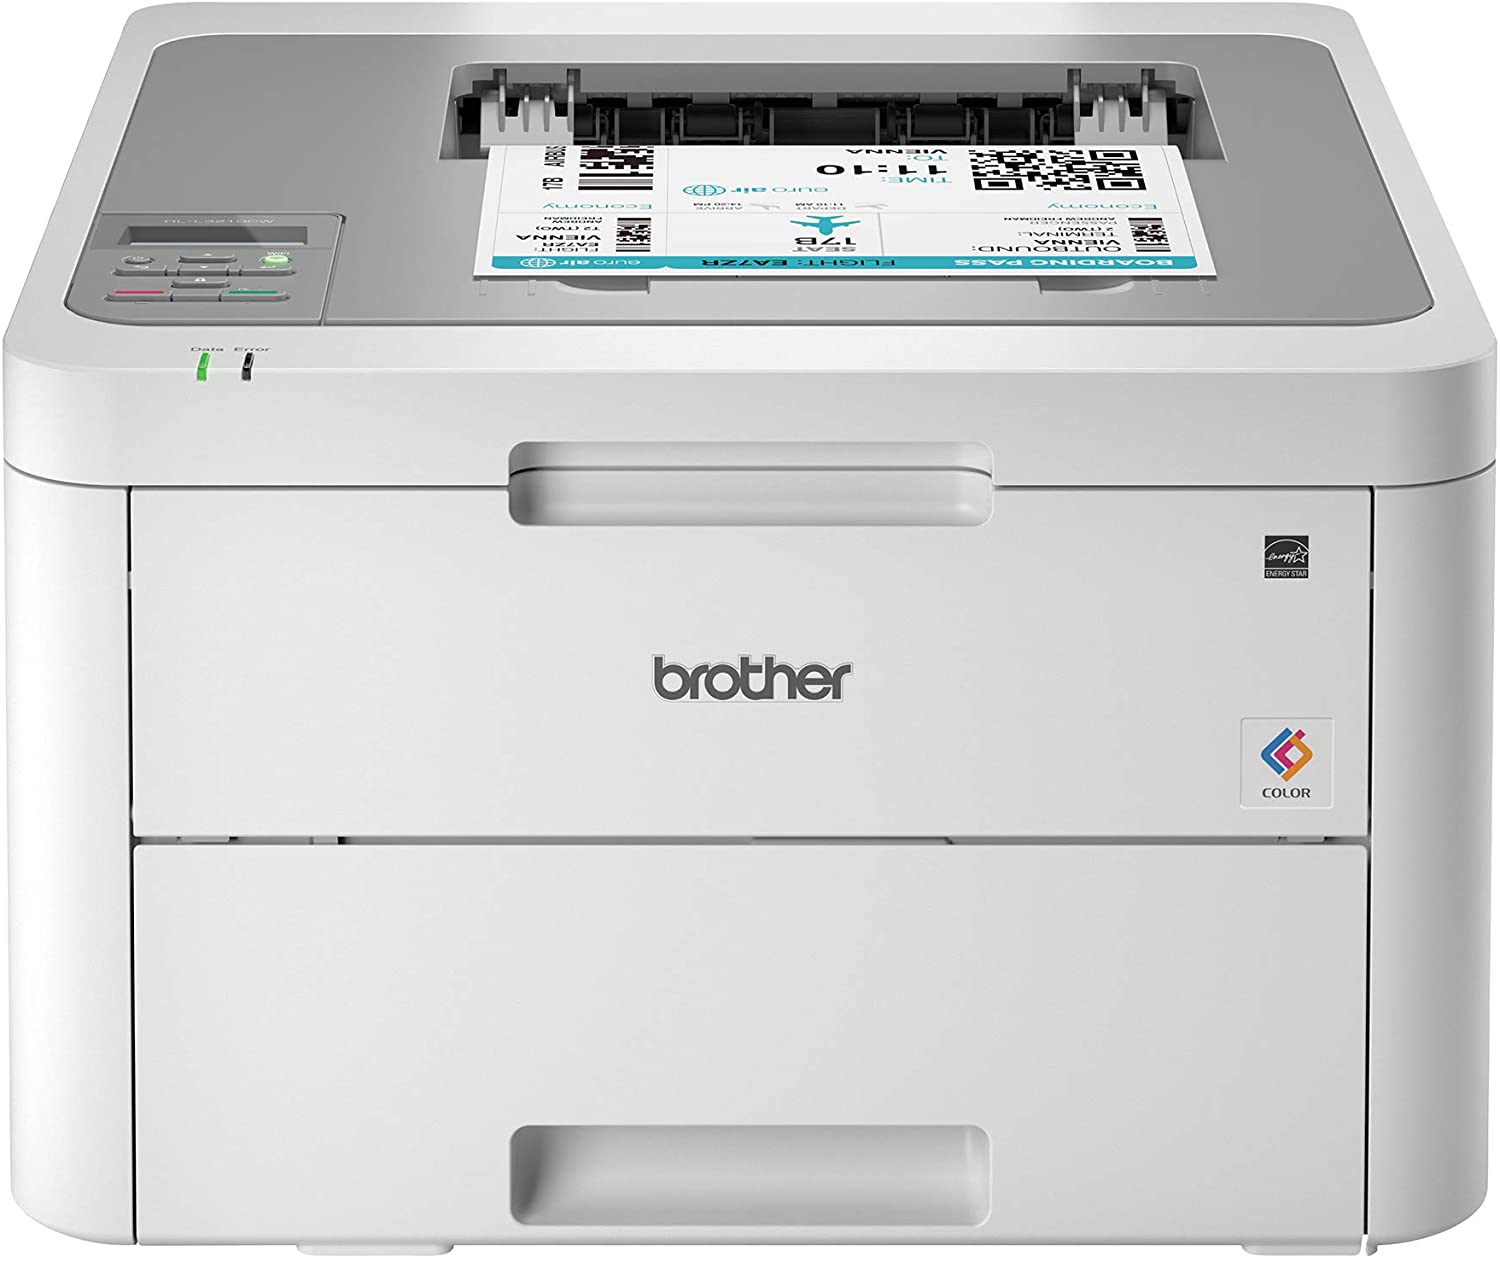 Brother HL-L3210CW Compact Digital Color Printer Providing Laser Printer Quality Results with Wireless, Amazon Dash Replenishment Ready, White uk reviews